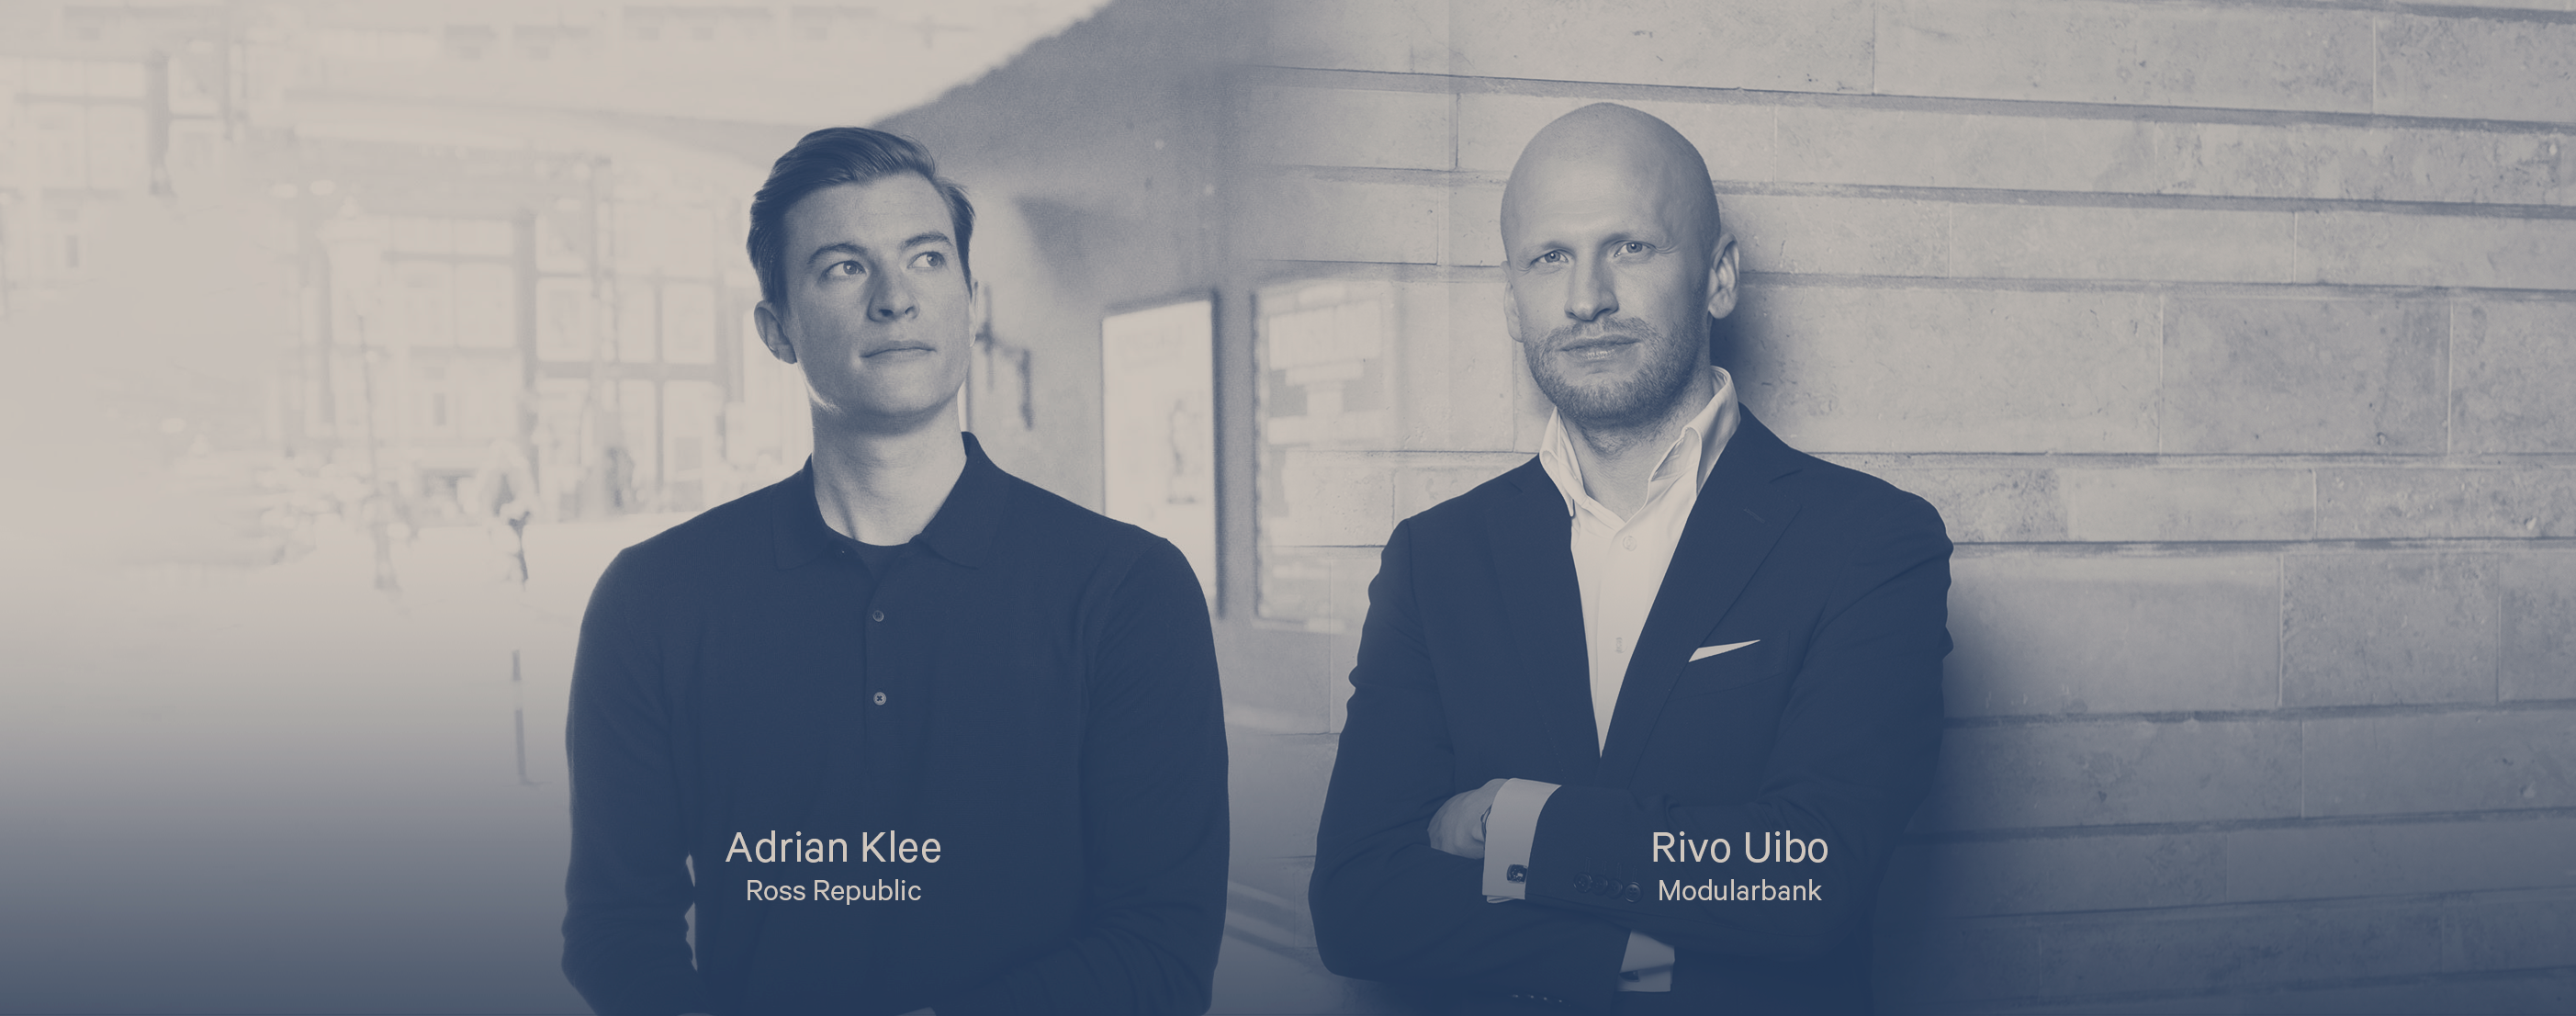 rivo uibo from modularbank and adrian klee from ross republic